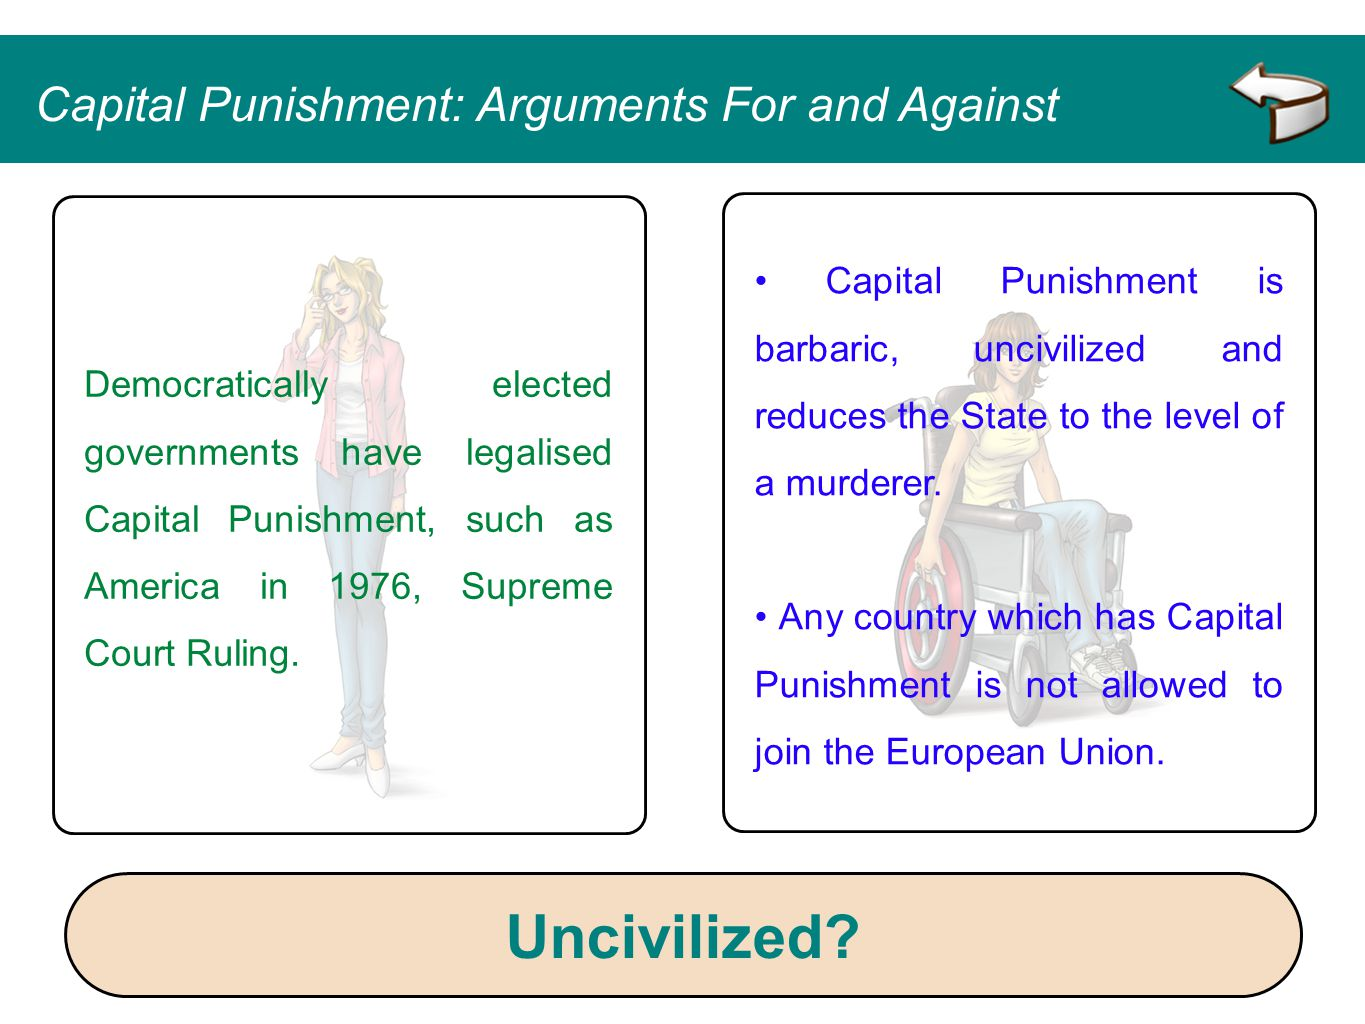 Uncivilized Capital Punishment: Arguments For and Against